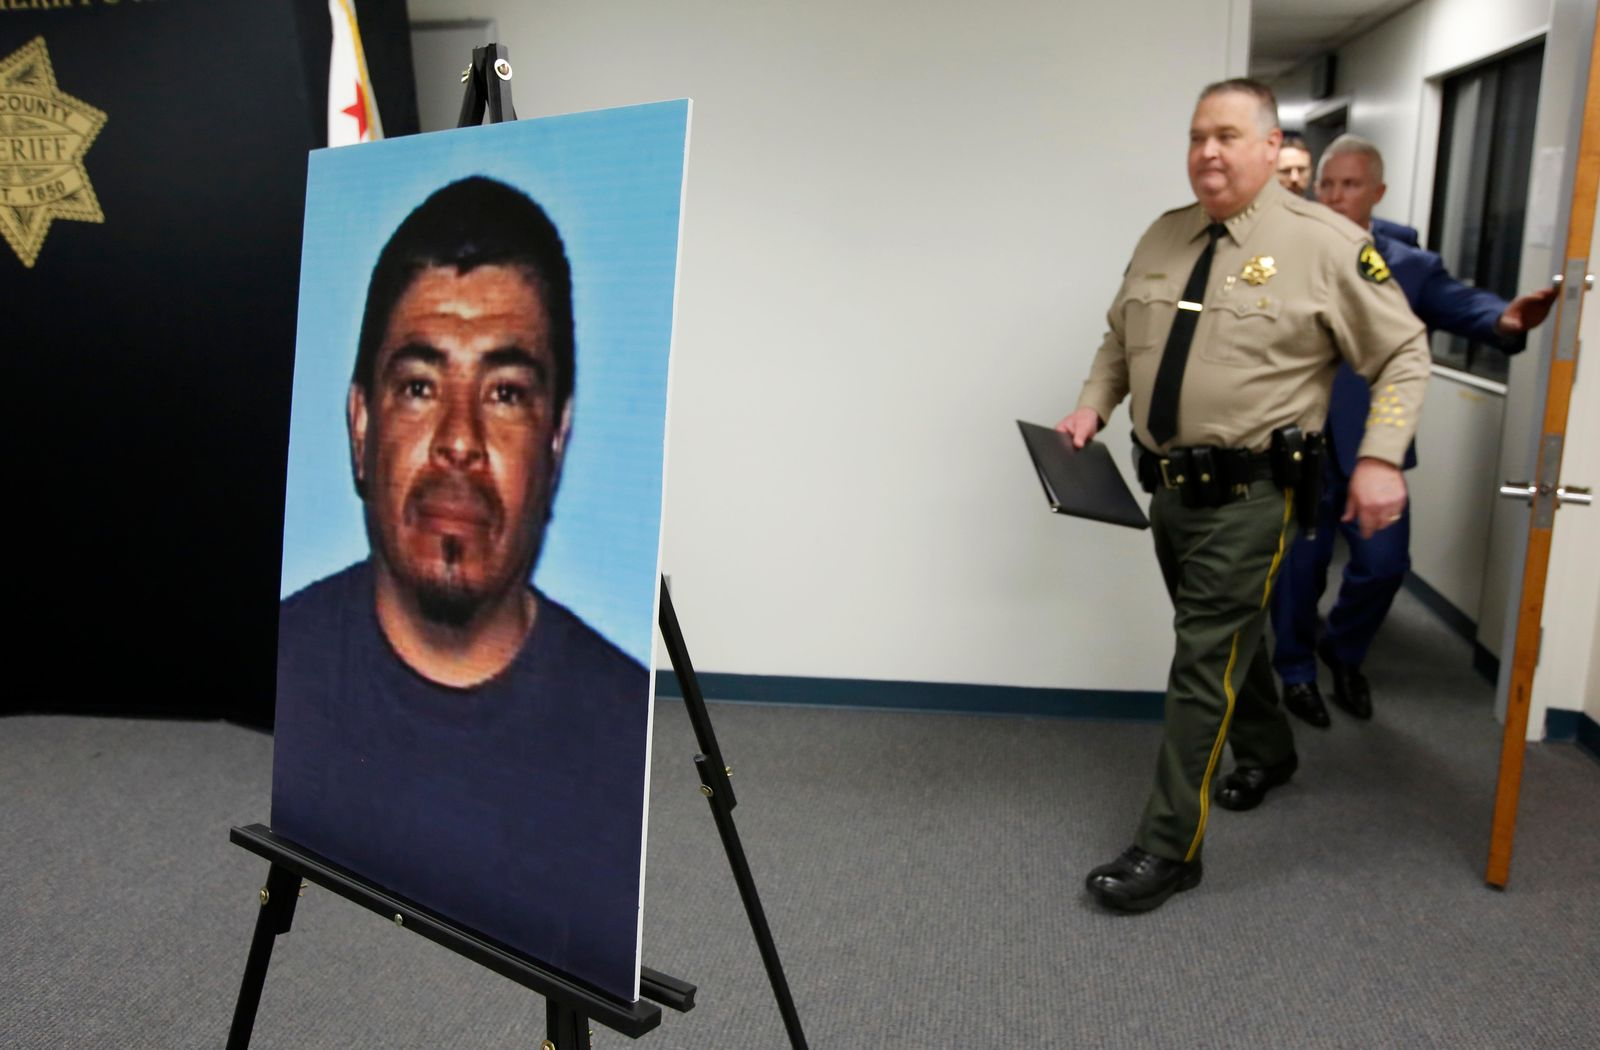 A photo of Paul Perez, who has been arrested in the deaths of his five children, is displayed as Yolo County Sheriff Tom Lopez, left and Yolo County District Attorney Jeff Reisig, right, enter a news conference in Woodland, Calif., Monday, Jan. 27, 2020. Paul Perez, 57, has been arrested in the decades-old killings of five of his infant children, a case the sheriff said had haunted his agency for years, the Yolo County Sheriff's Office said Monday, Jan. 27, 2020. (AP Photo/Rich Pedroncelli)